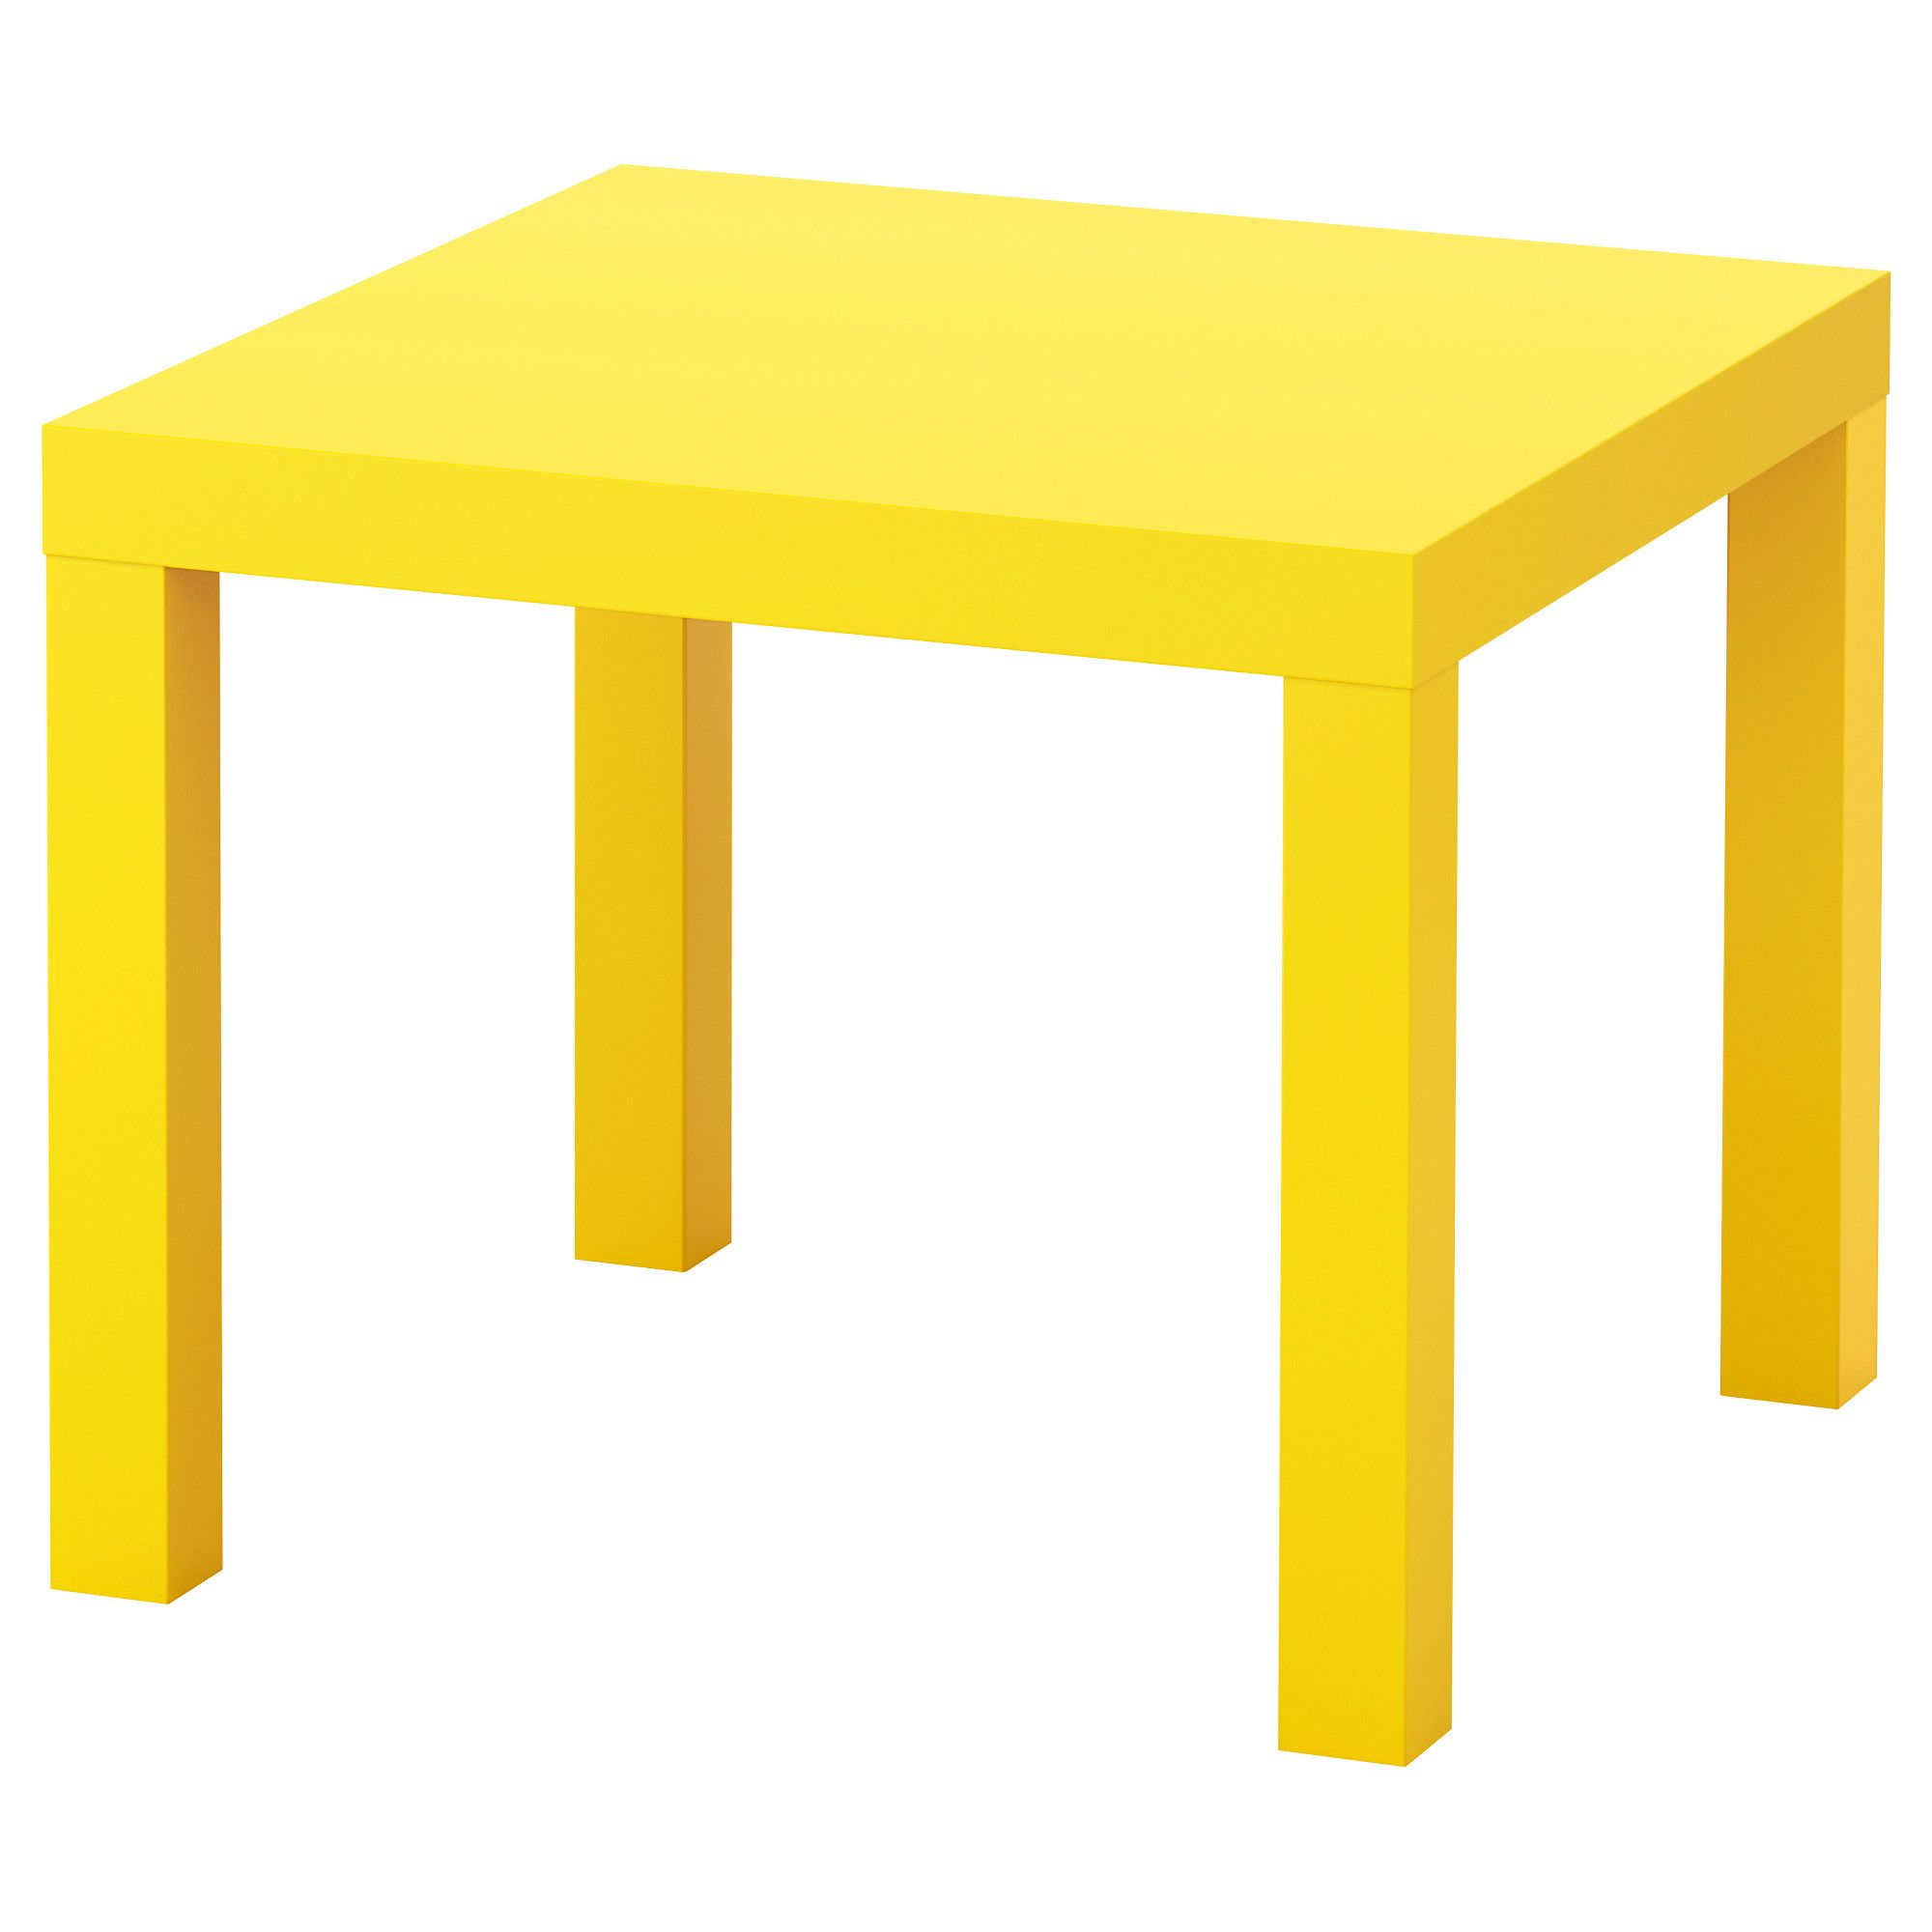 Lack Couchtisch Ikea Ikea Lack Side Table Yellow Gelb Pinterest Ikea Table Und